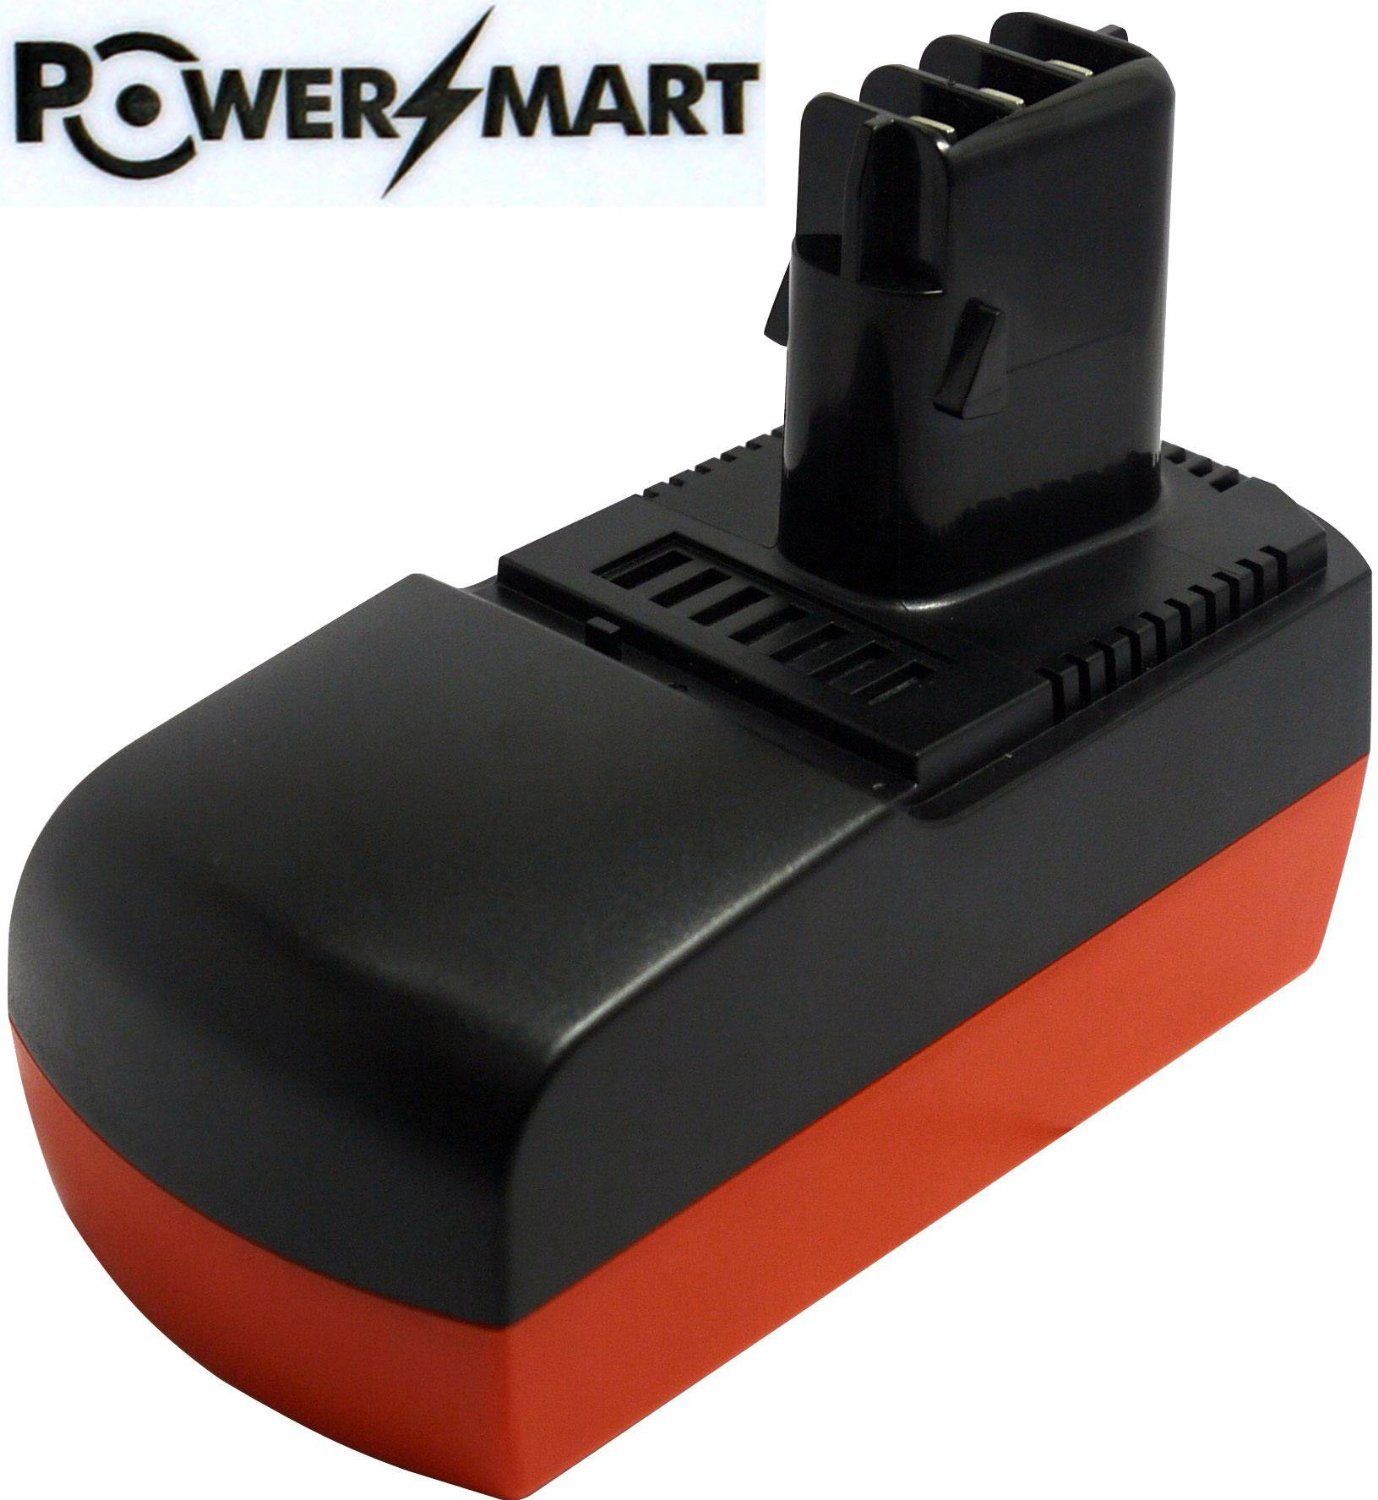 PowerSmart® 18V 2.0Ah Ni-Cd Replace for METABO 6.25477, 6.25478 power tools battery BSZ 18 BSZ 18 Impuls KSA P18 ULA 9.6-18